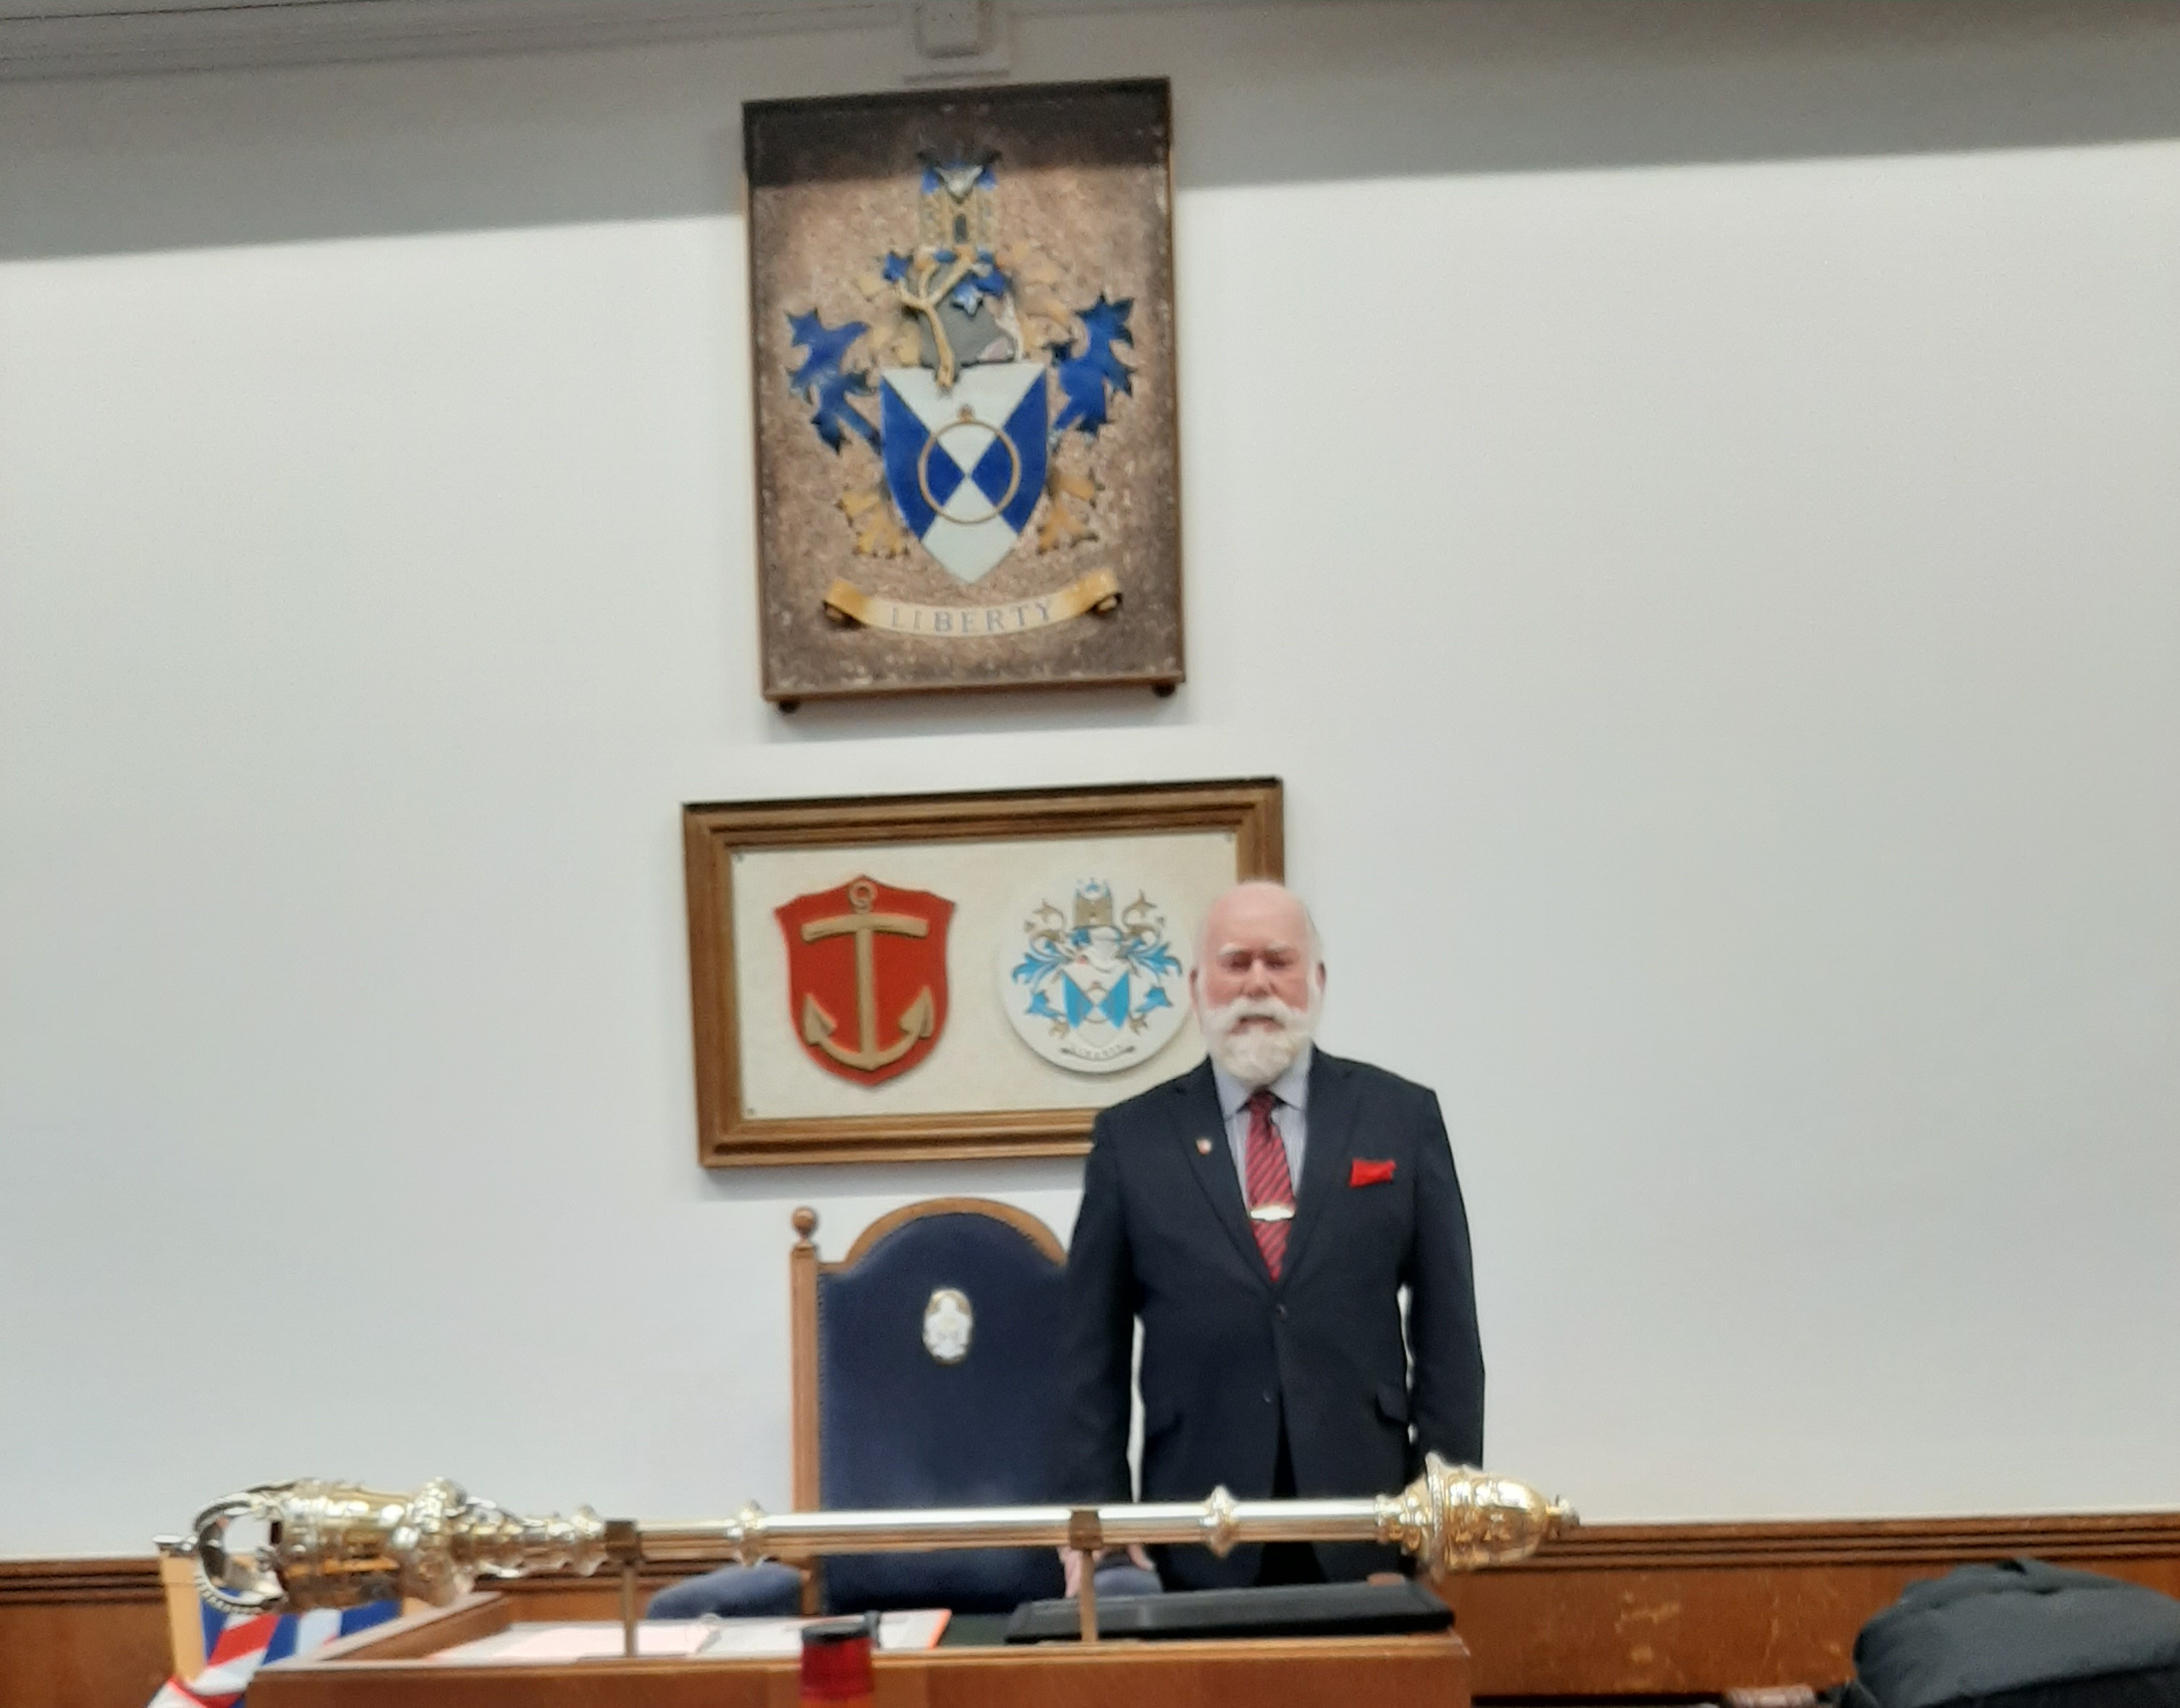 Cllr John Mylod, Mayor of Havering